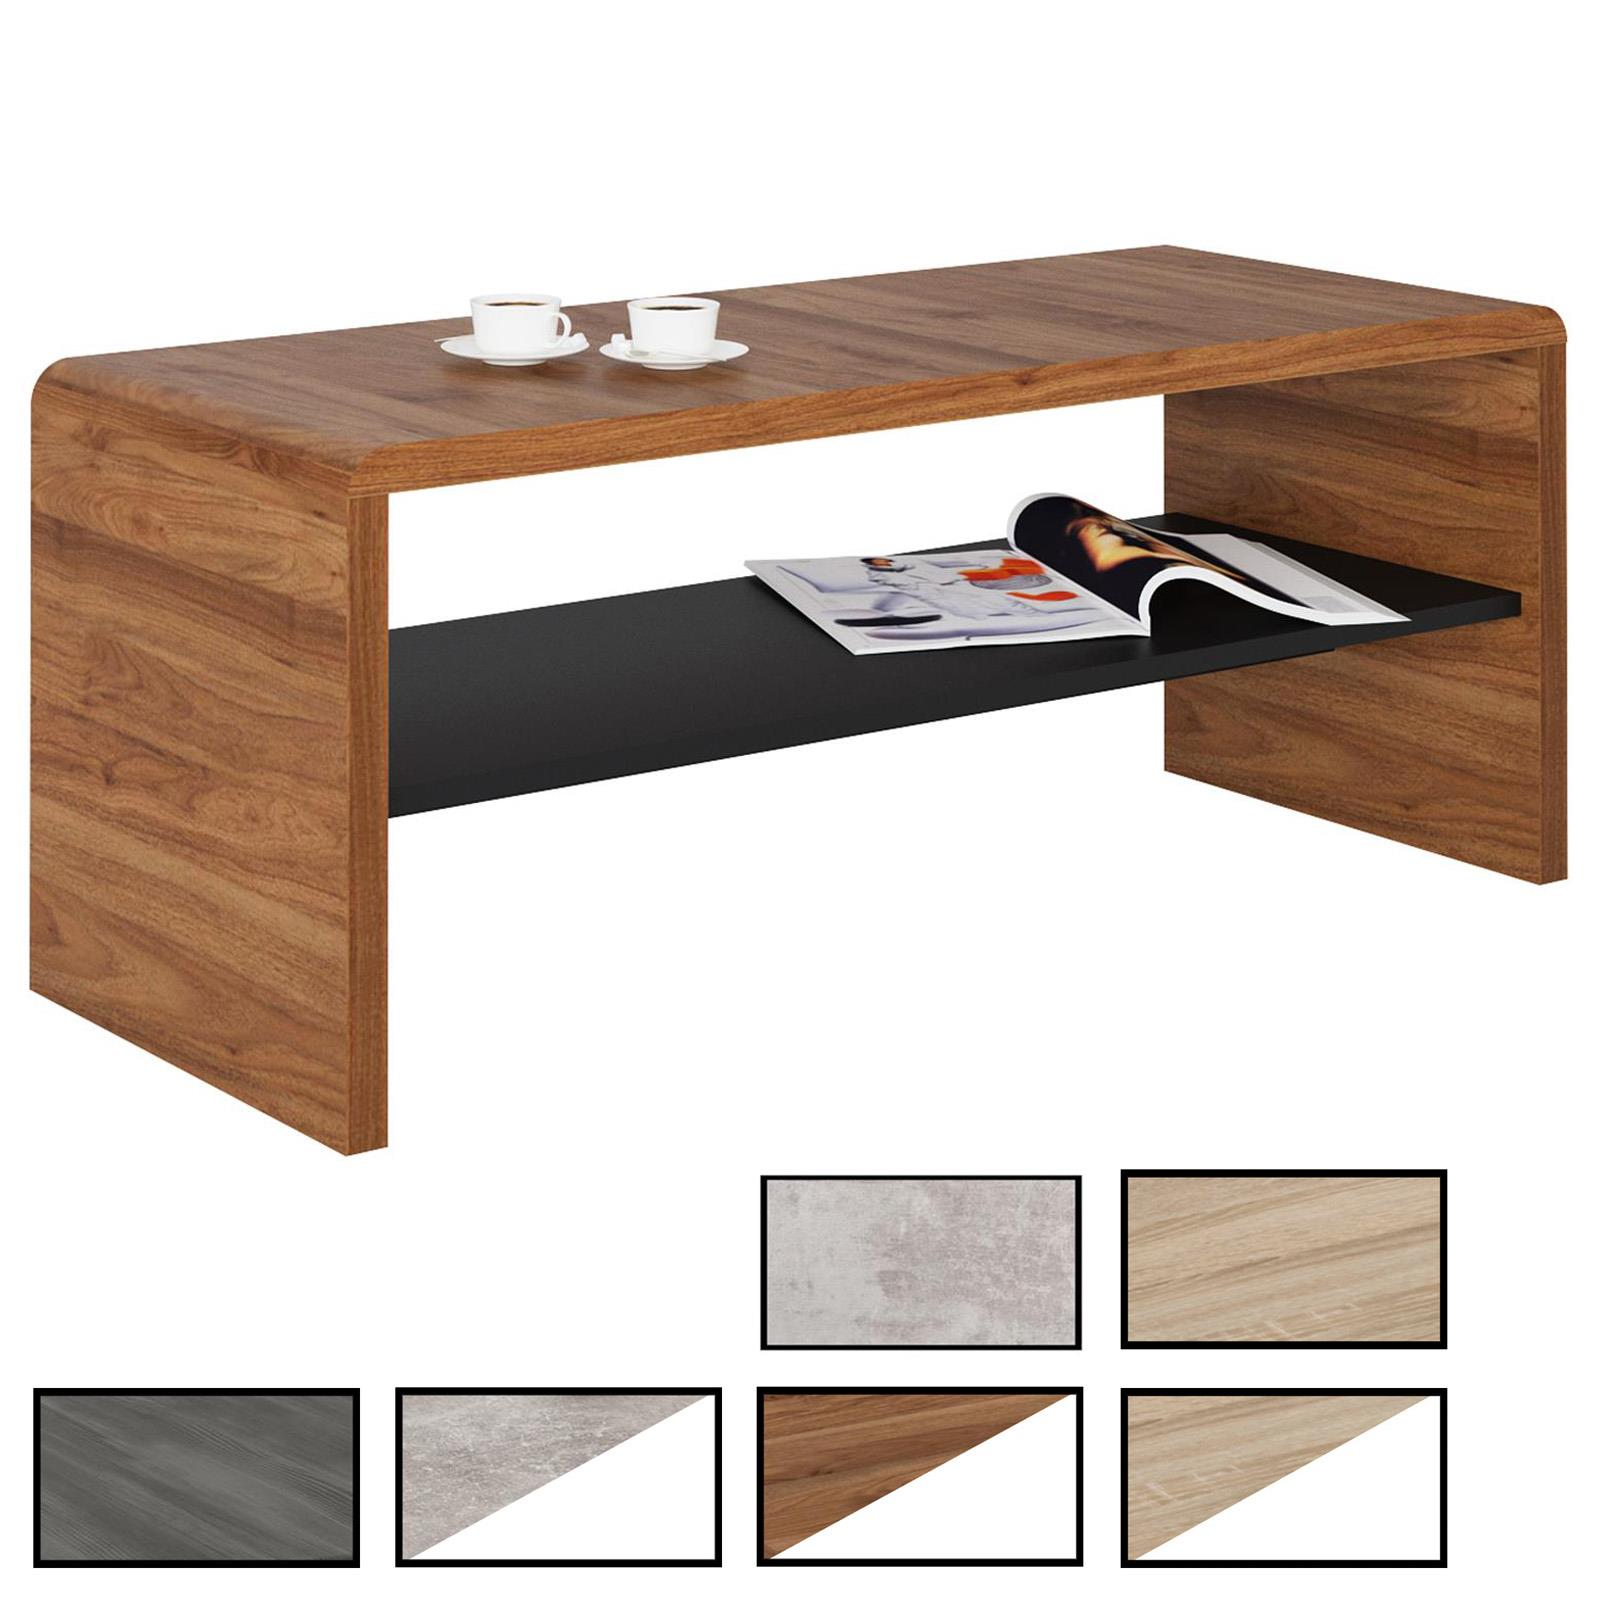 Table Basse Tv Idimex Meuble Tv Table Basse Louna 6 Coloris Disponibles Idées